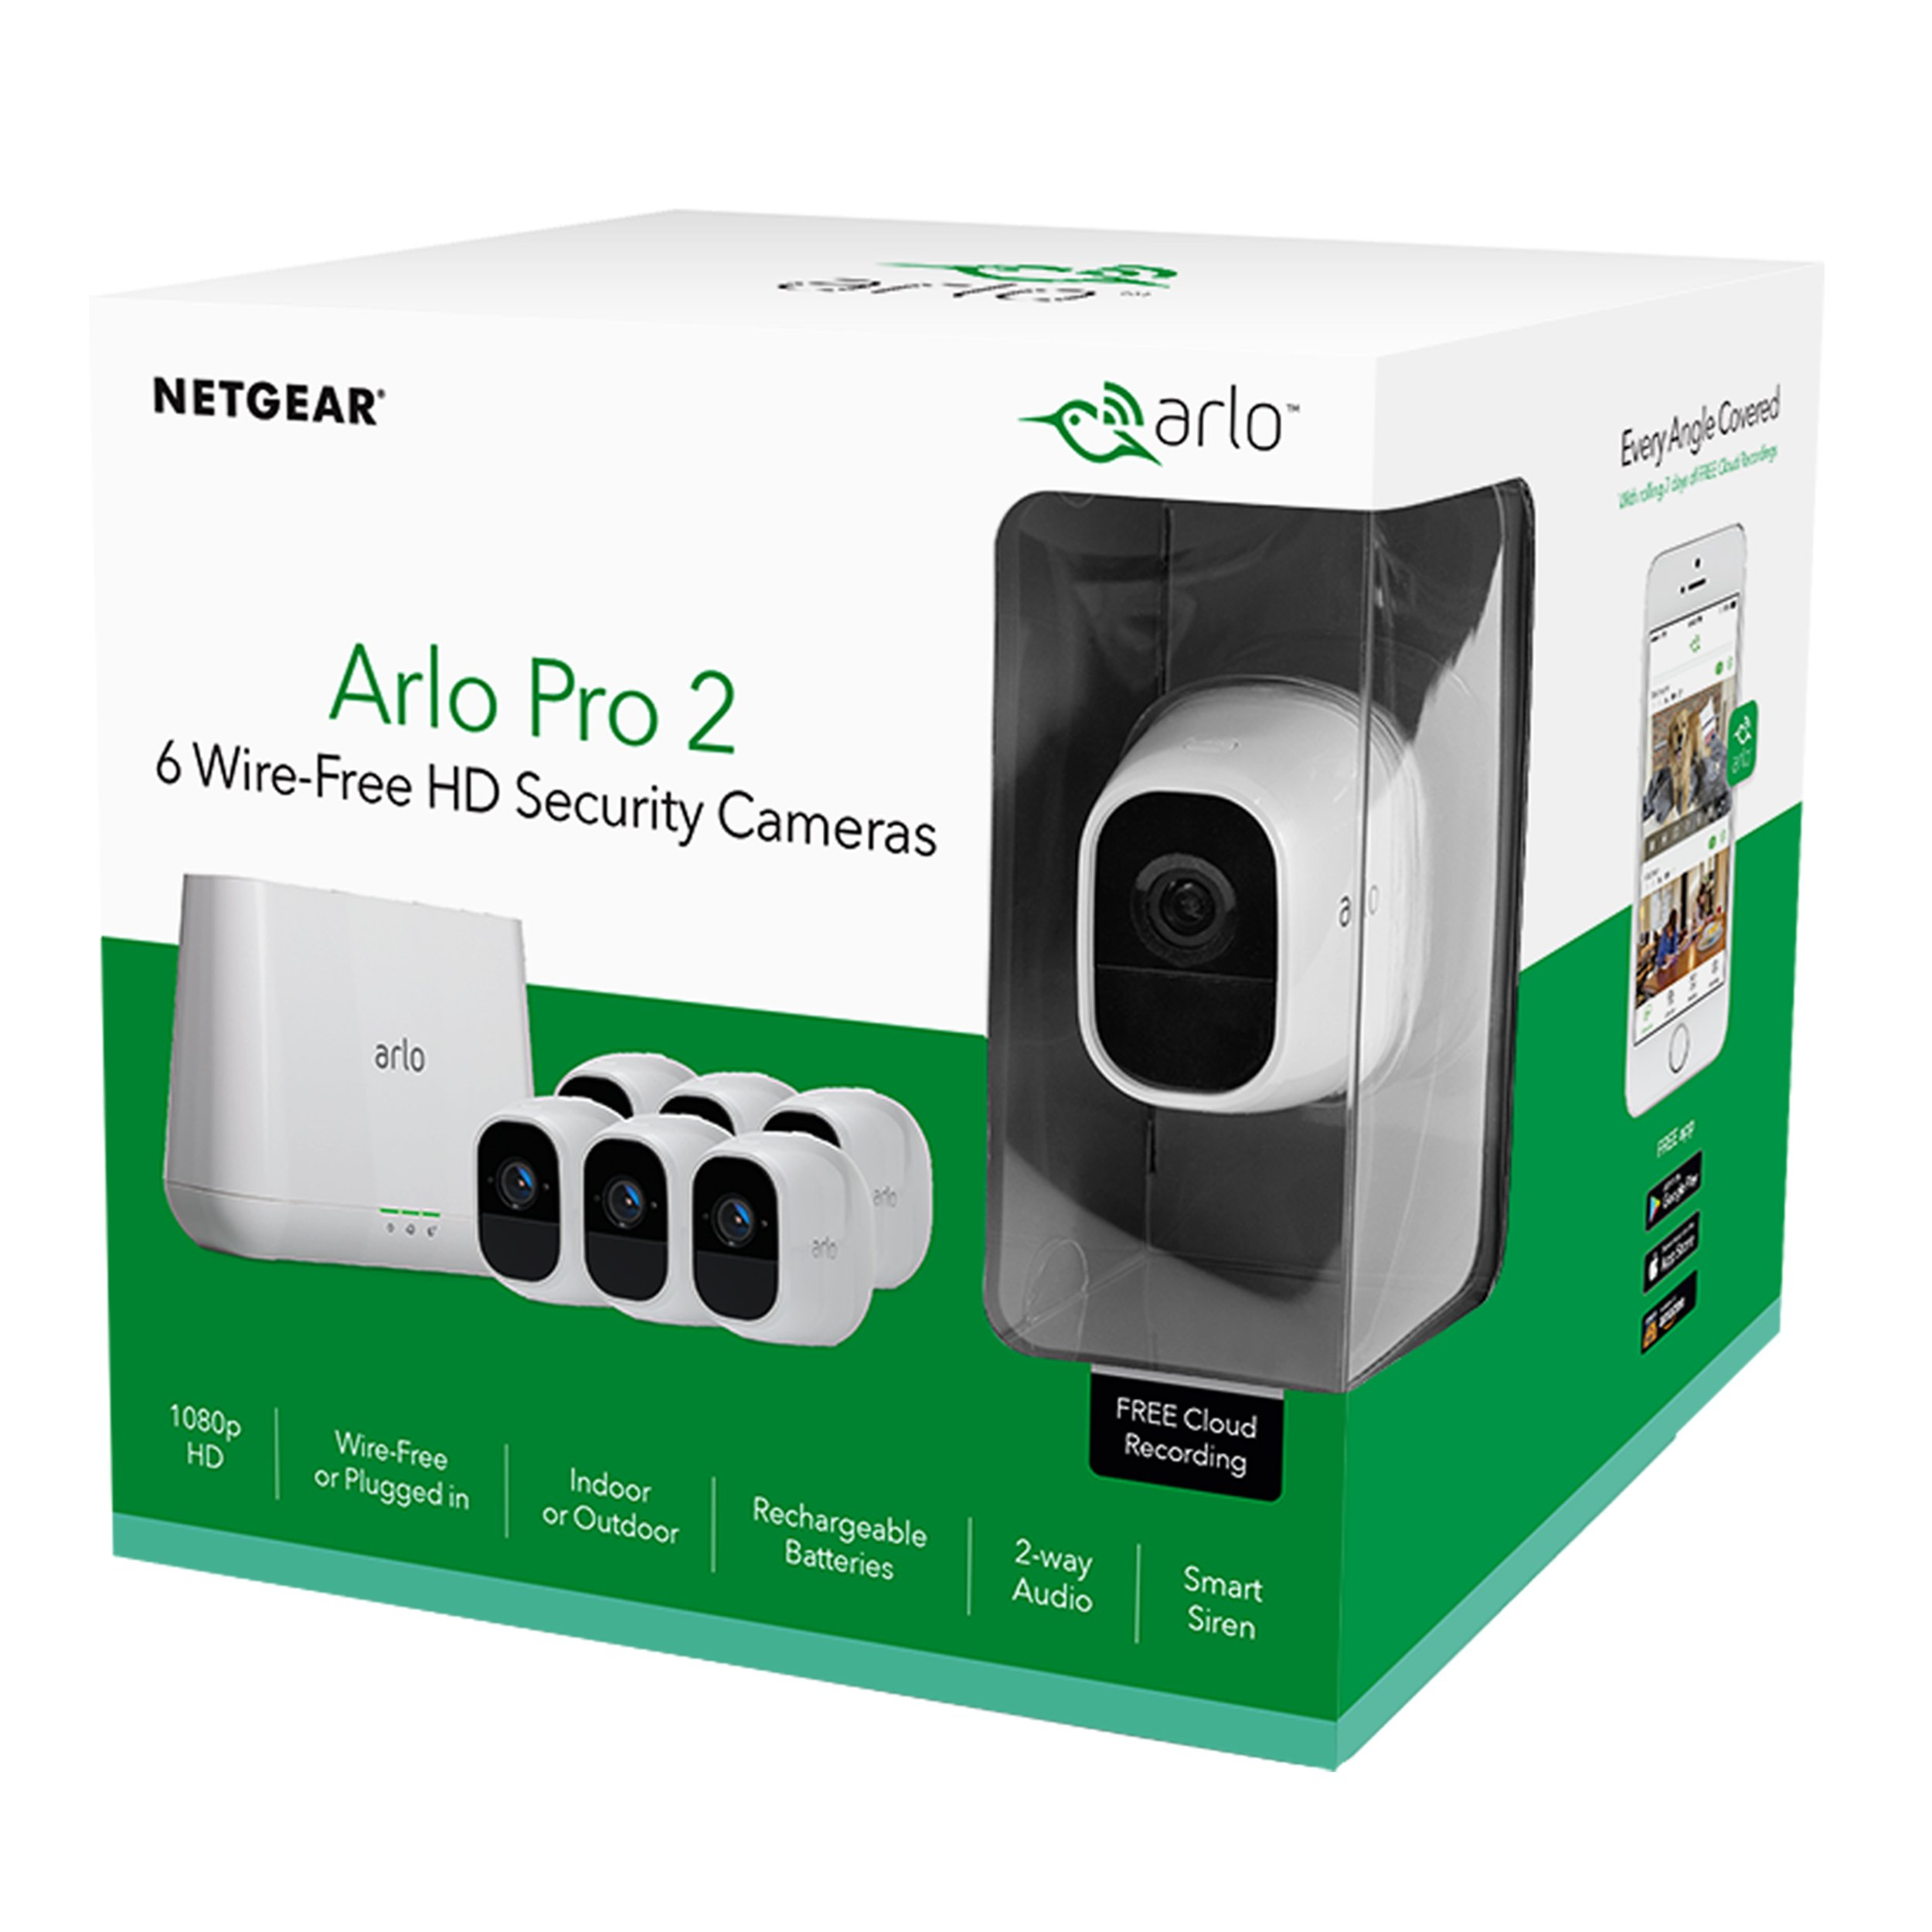 Arlo Pro 2 by NETGEAR Home Security Camera System (6 pack) with Siren, Wireless, Rechargeable, 1080p HD, Audio, Indoor or Outdoor, Night Vision, Works with Amazon Alexa (VMS4630P) by NETGEAR (Image #6)